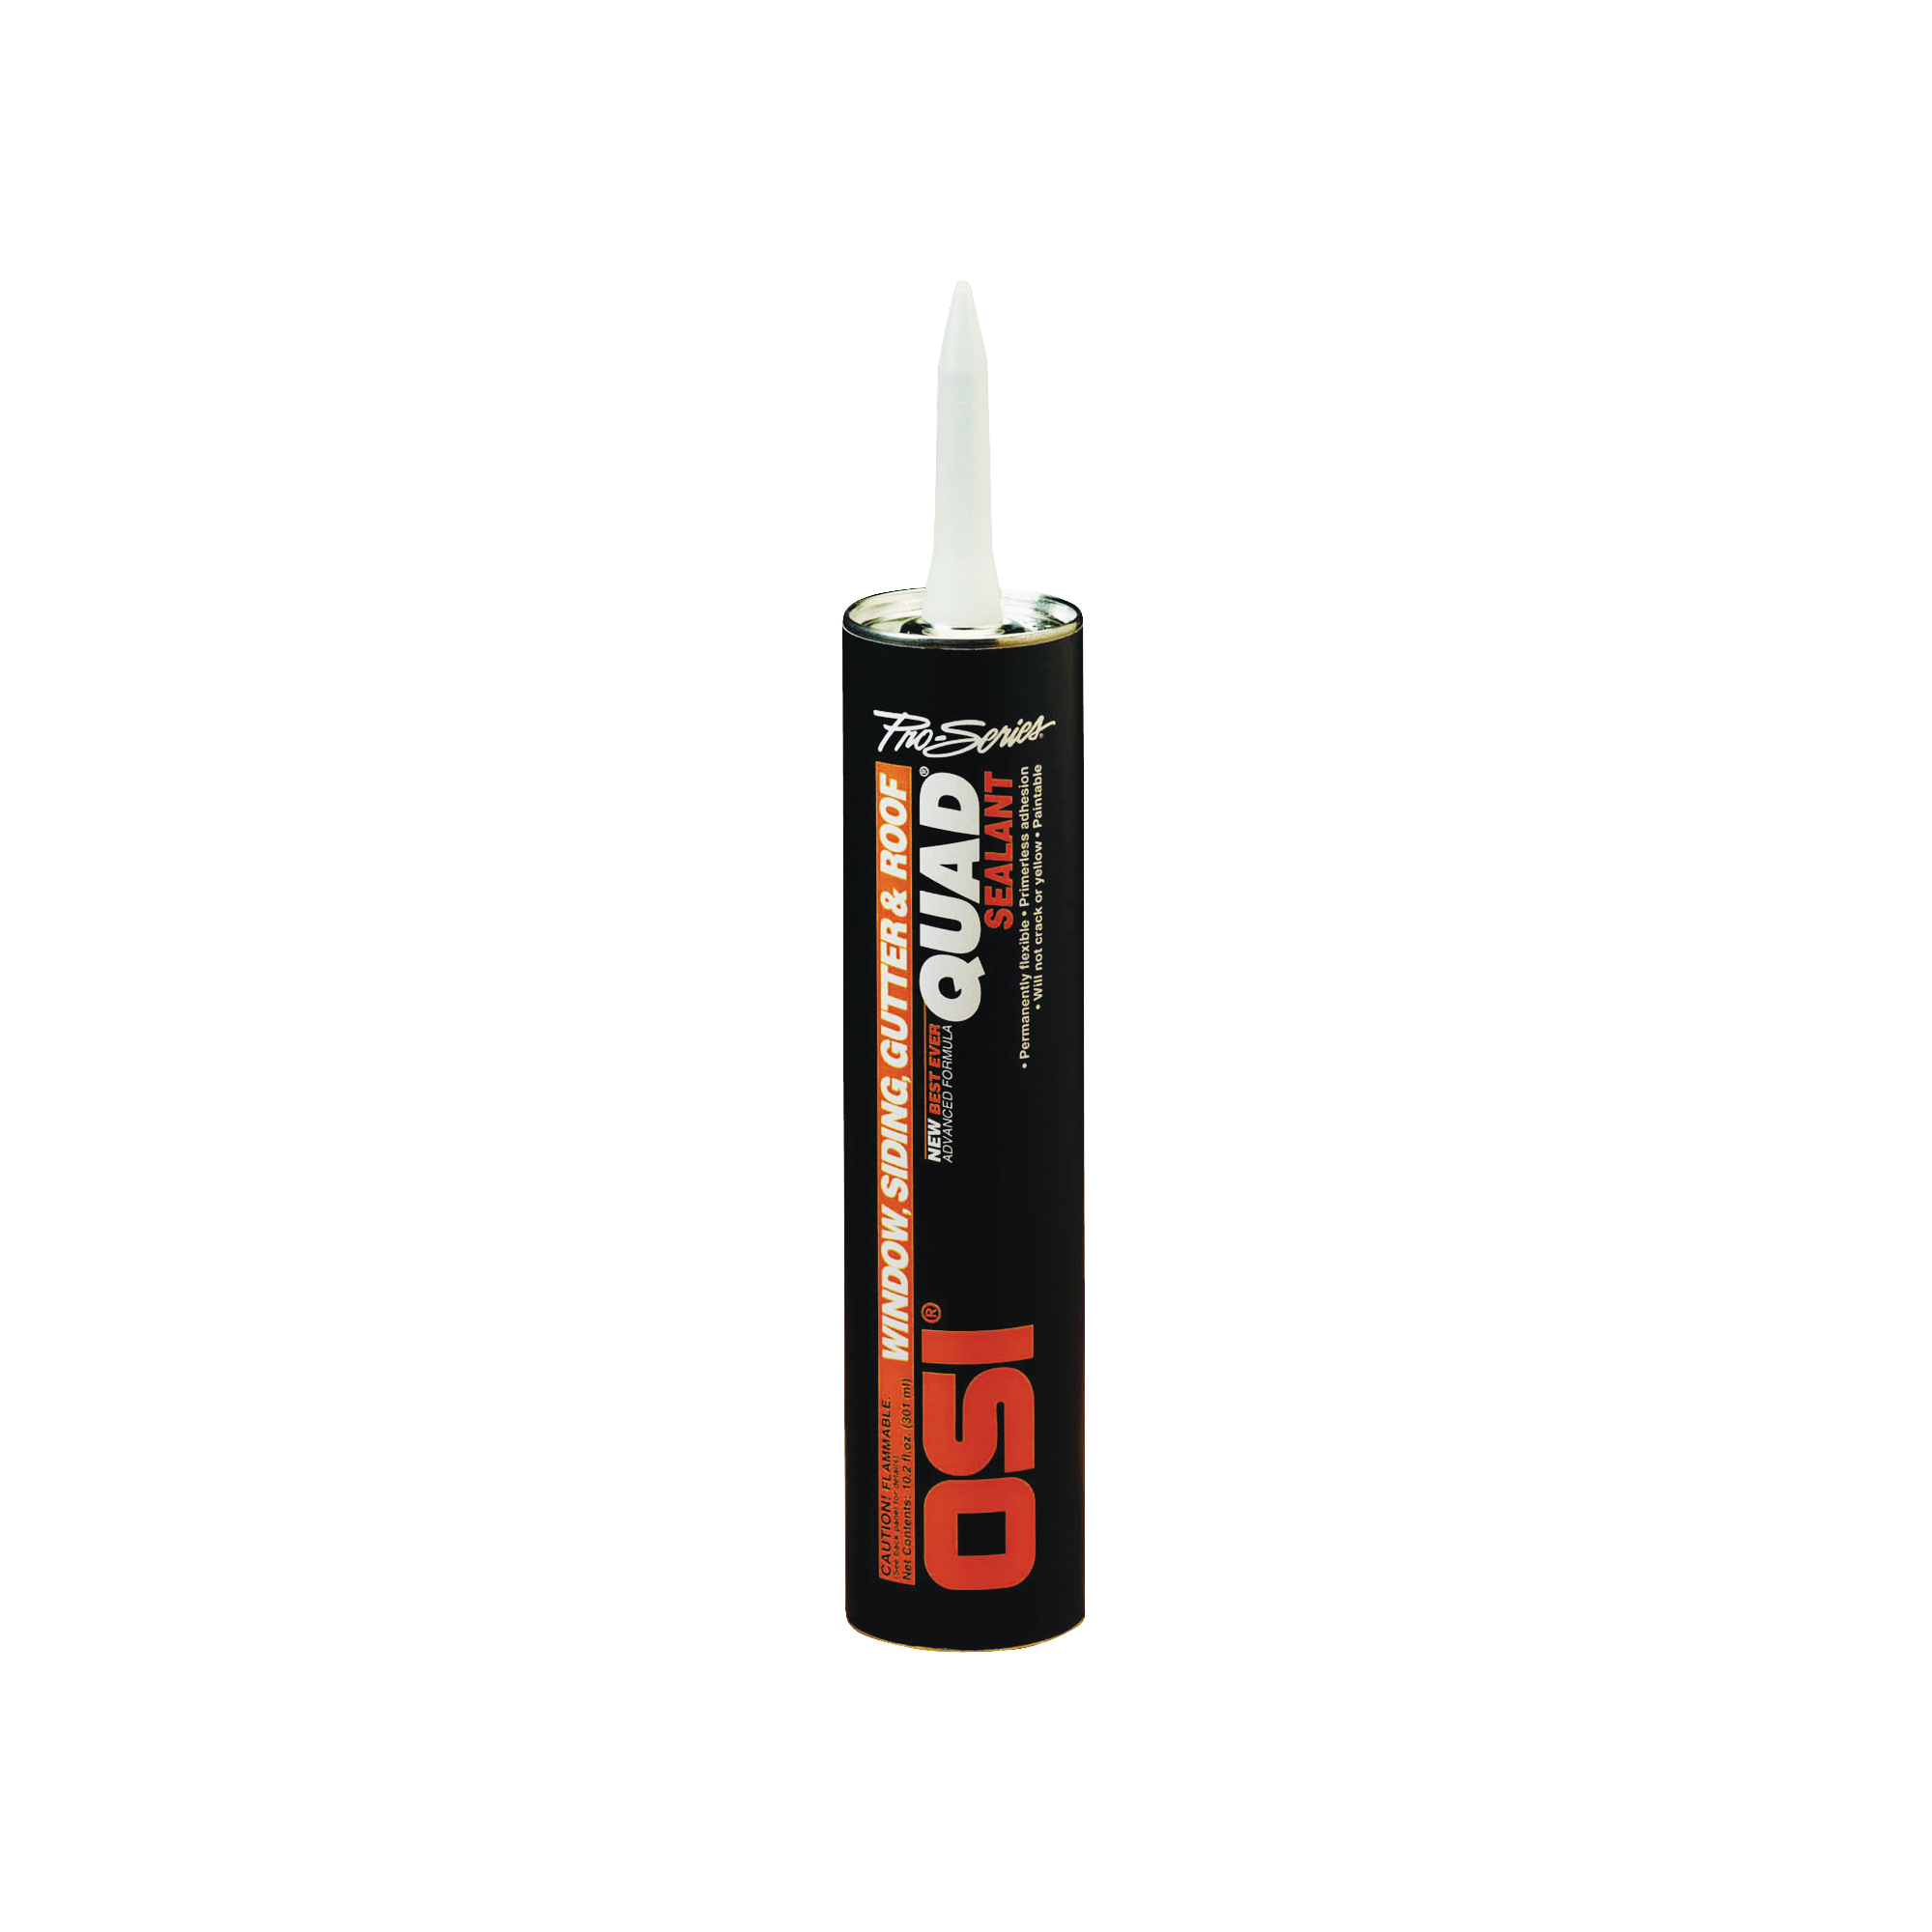 Picture of OSI 827837 Advanced Formula Sealant, Clear, 7 days Curing, 20 to 100 deg F, 10 oz Package, Cartridge